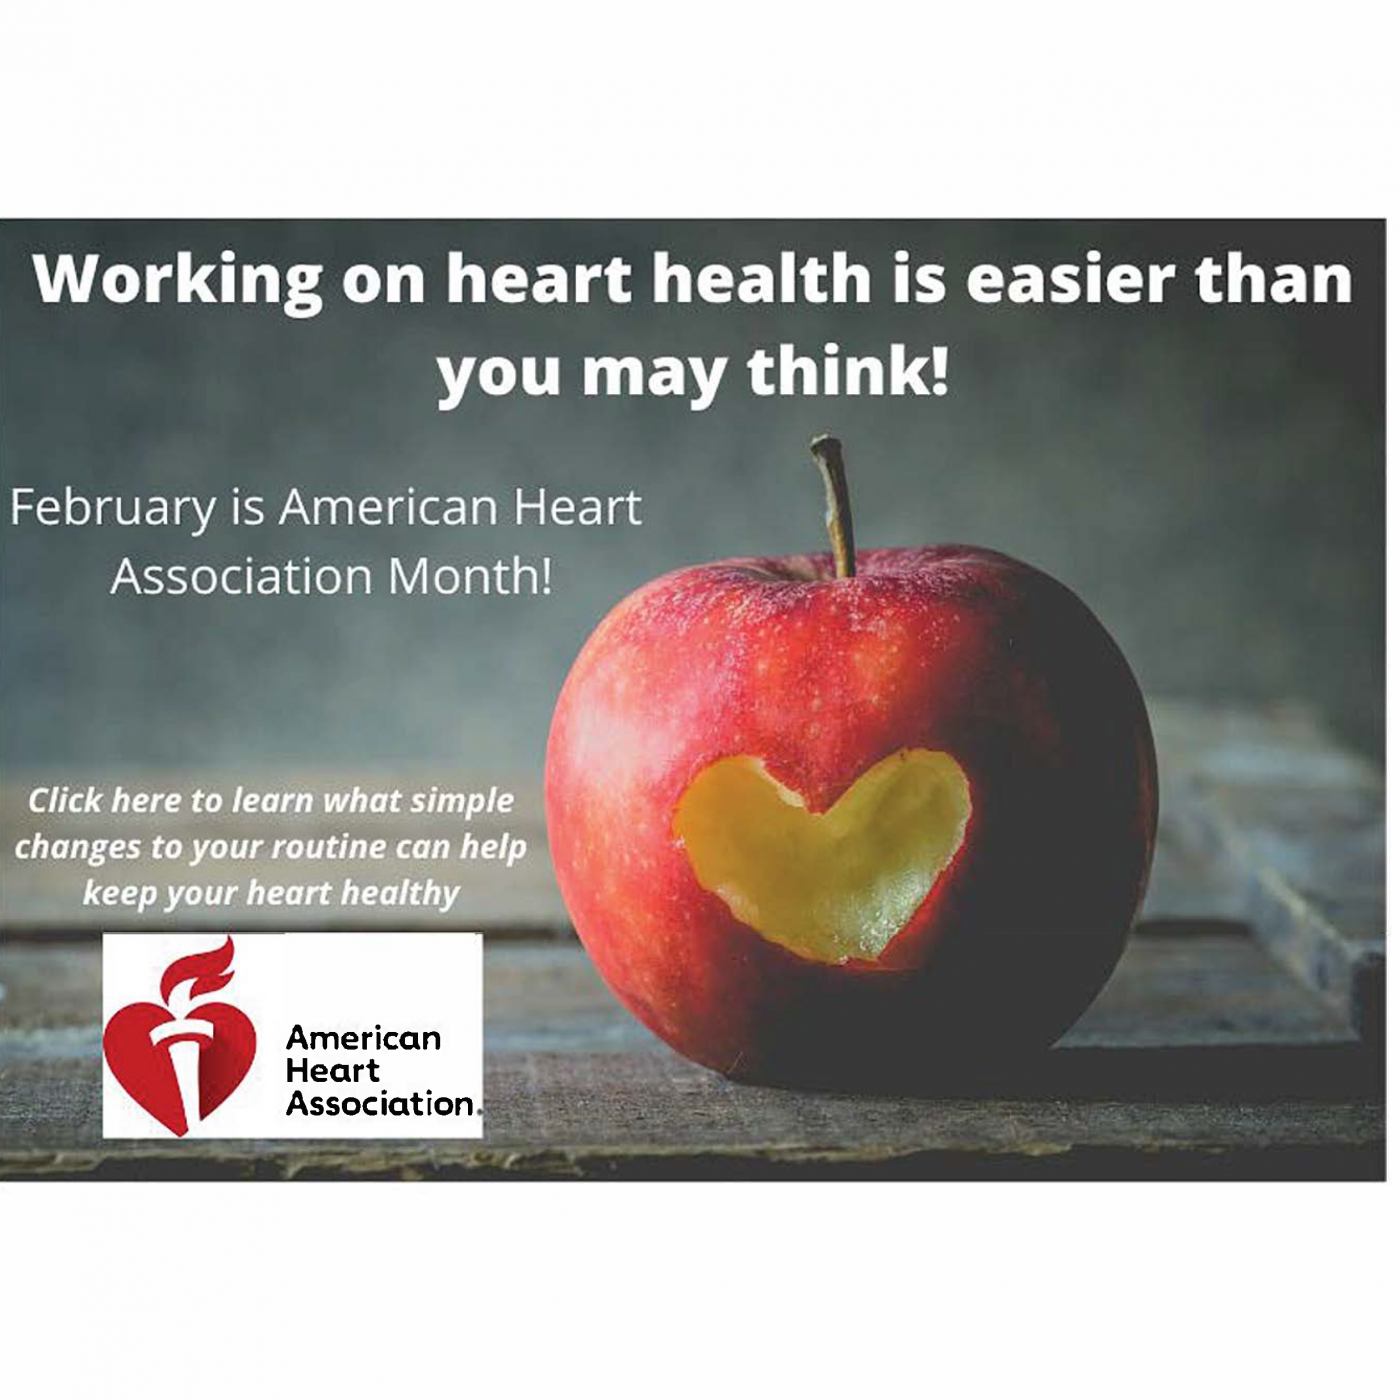 February is American Heart Association month!